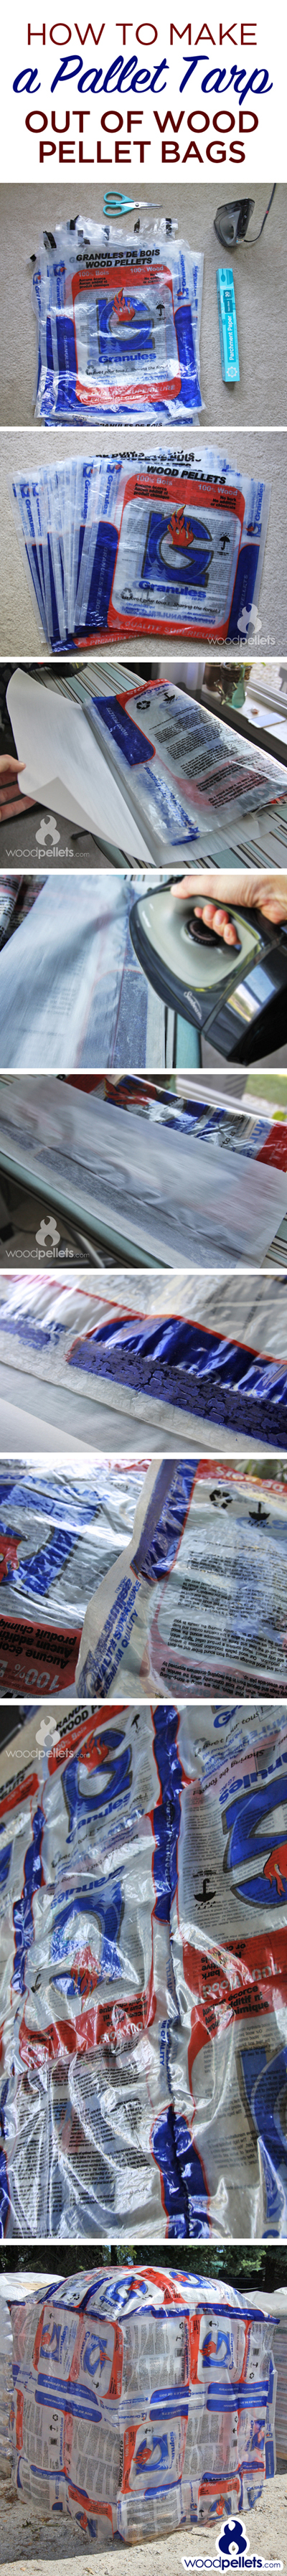 How to Make a Pallet Tarp from Empty Wood Pellet Bags